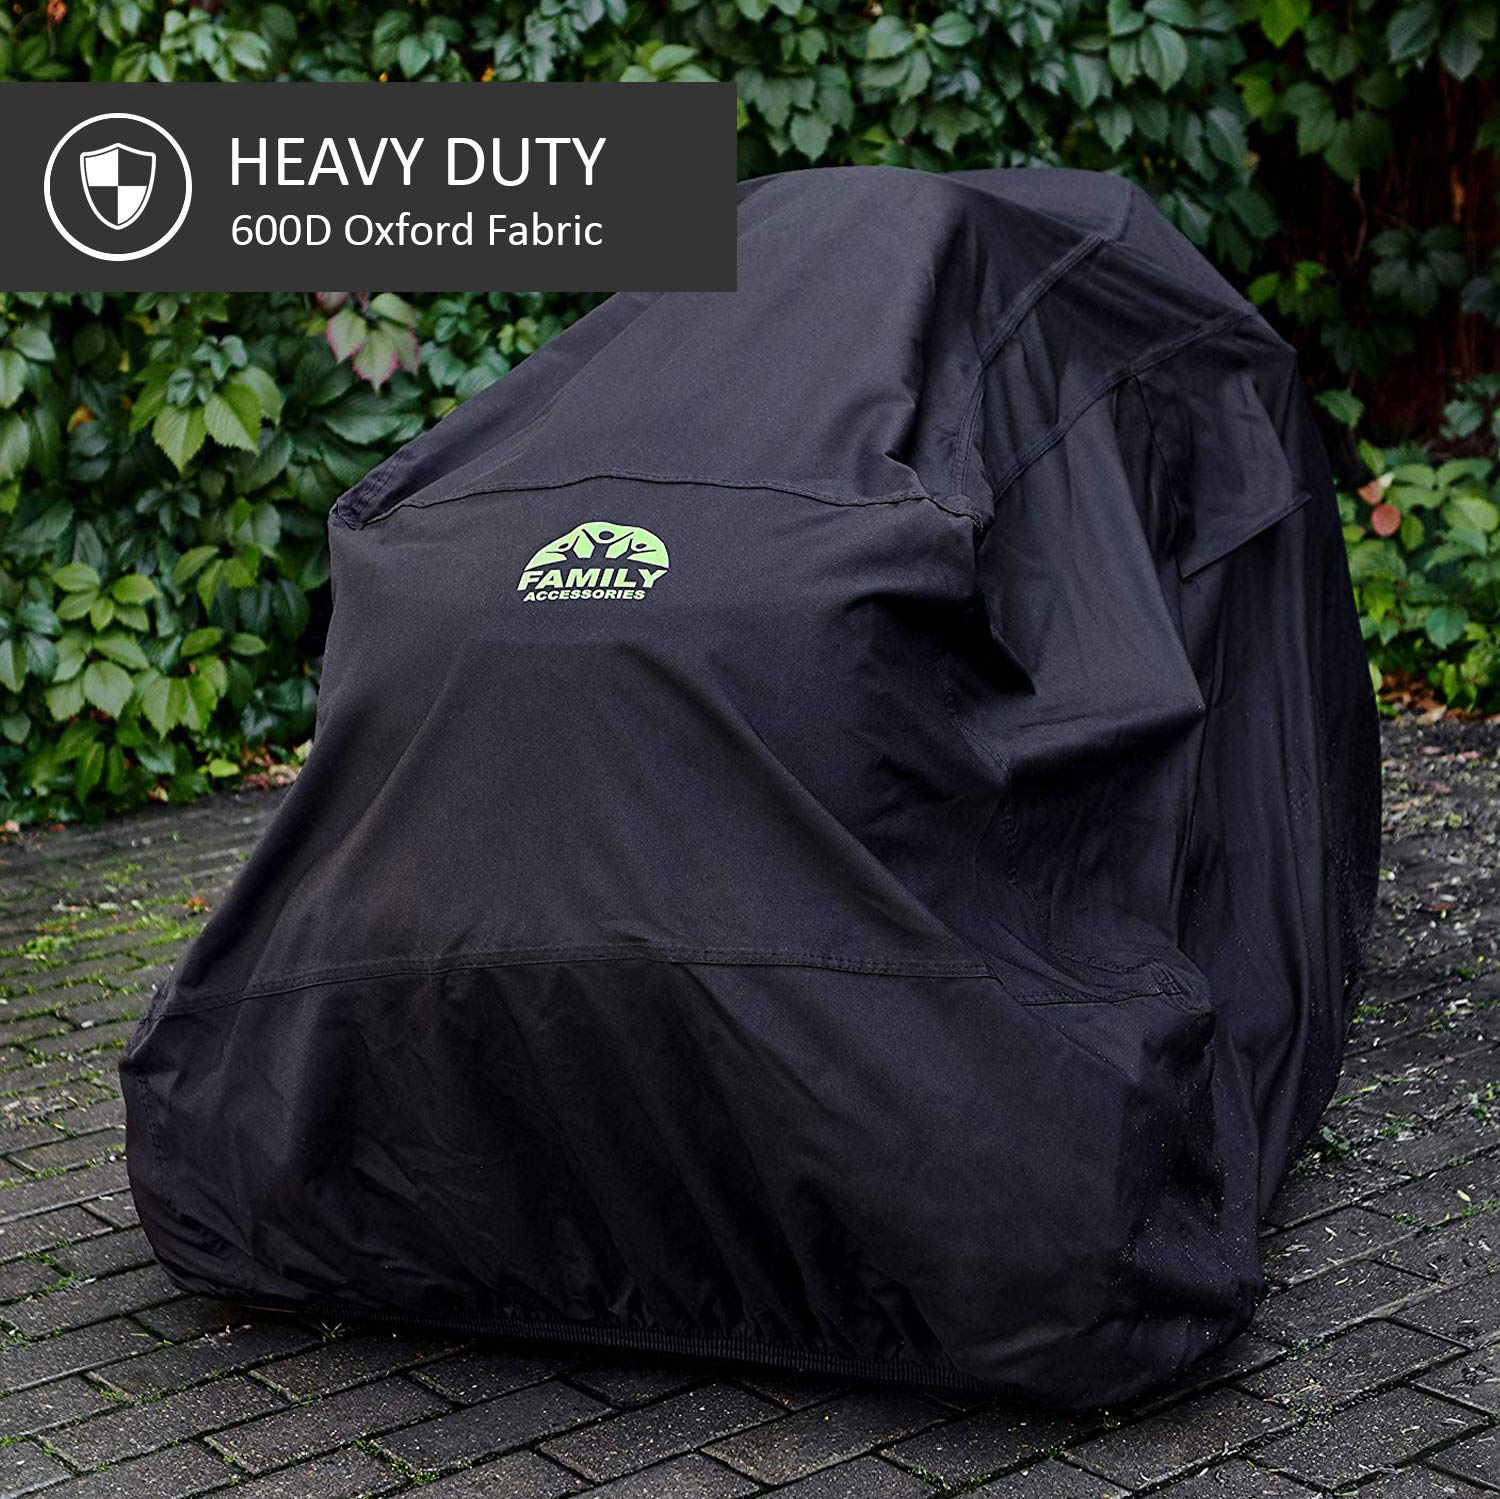 Family Accessories Waterproof Riding Lawn Mower Cover